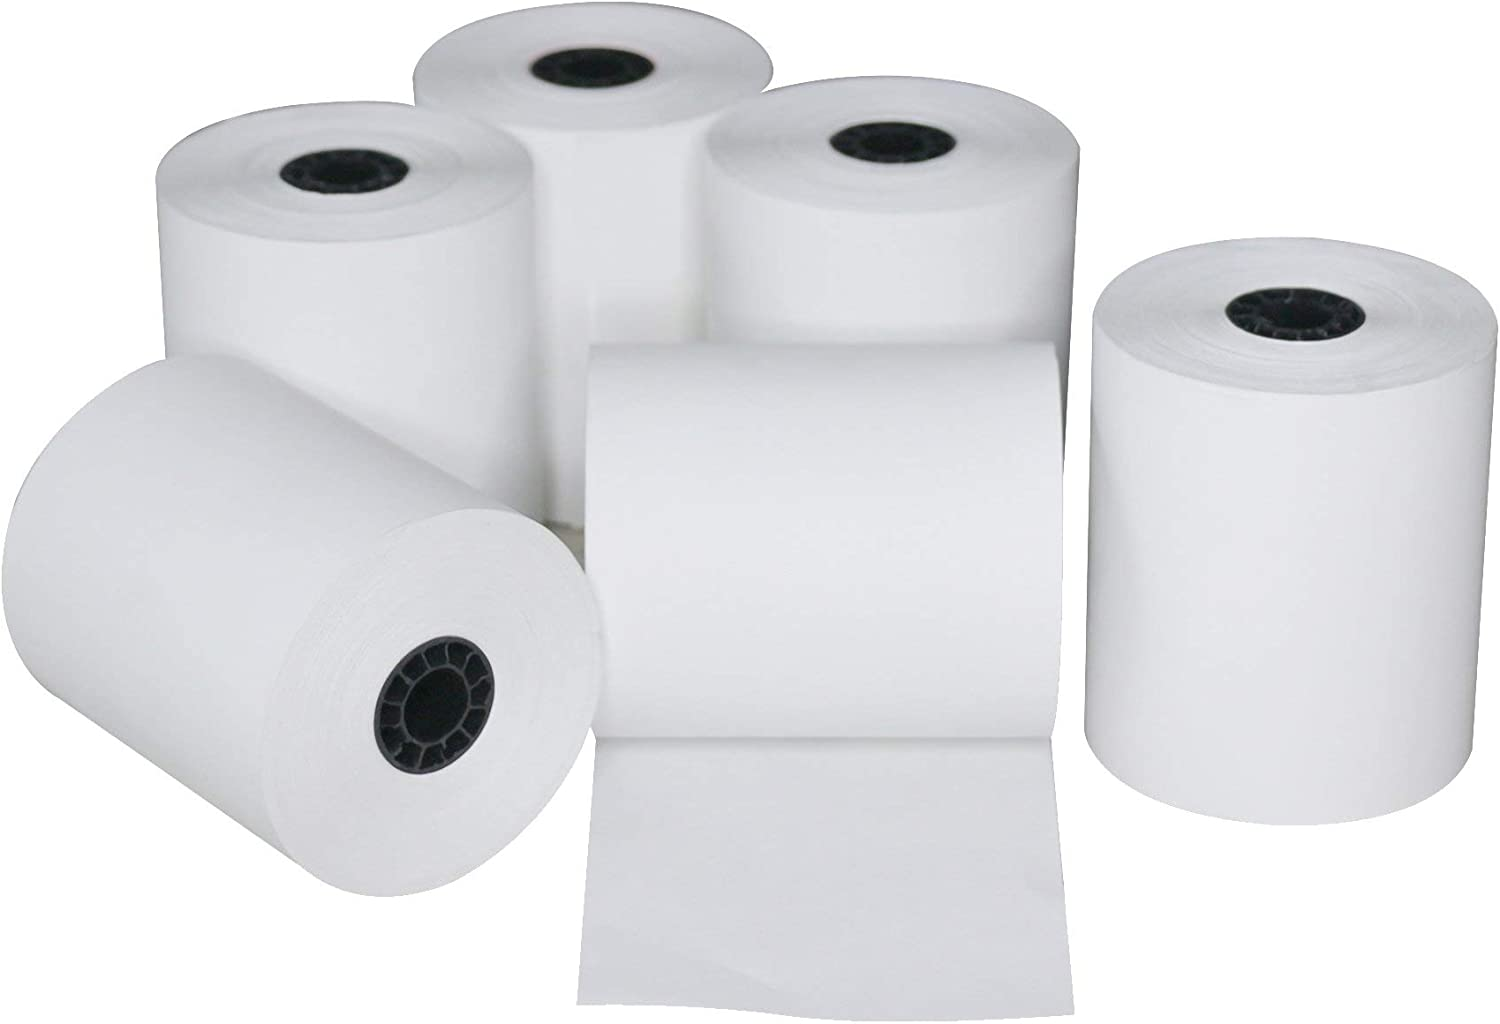 100 Rolls Clover Station Thermal Paper 3 1//8 x 220 BPA Free From NPOS Solutions